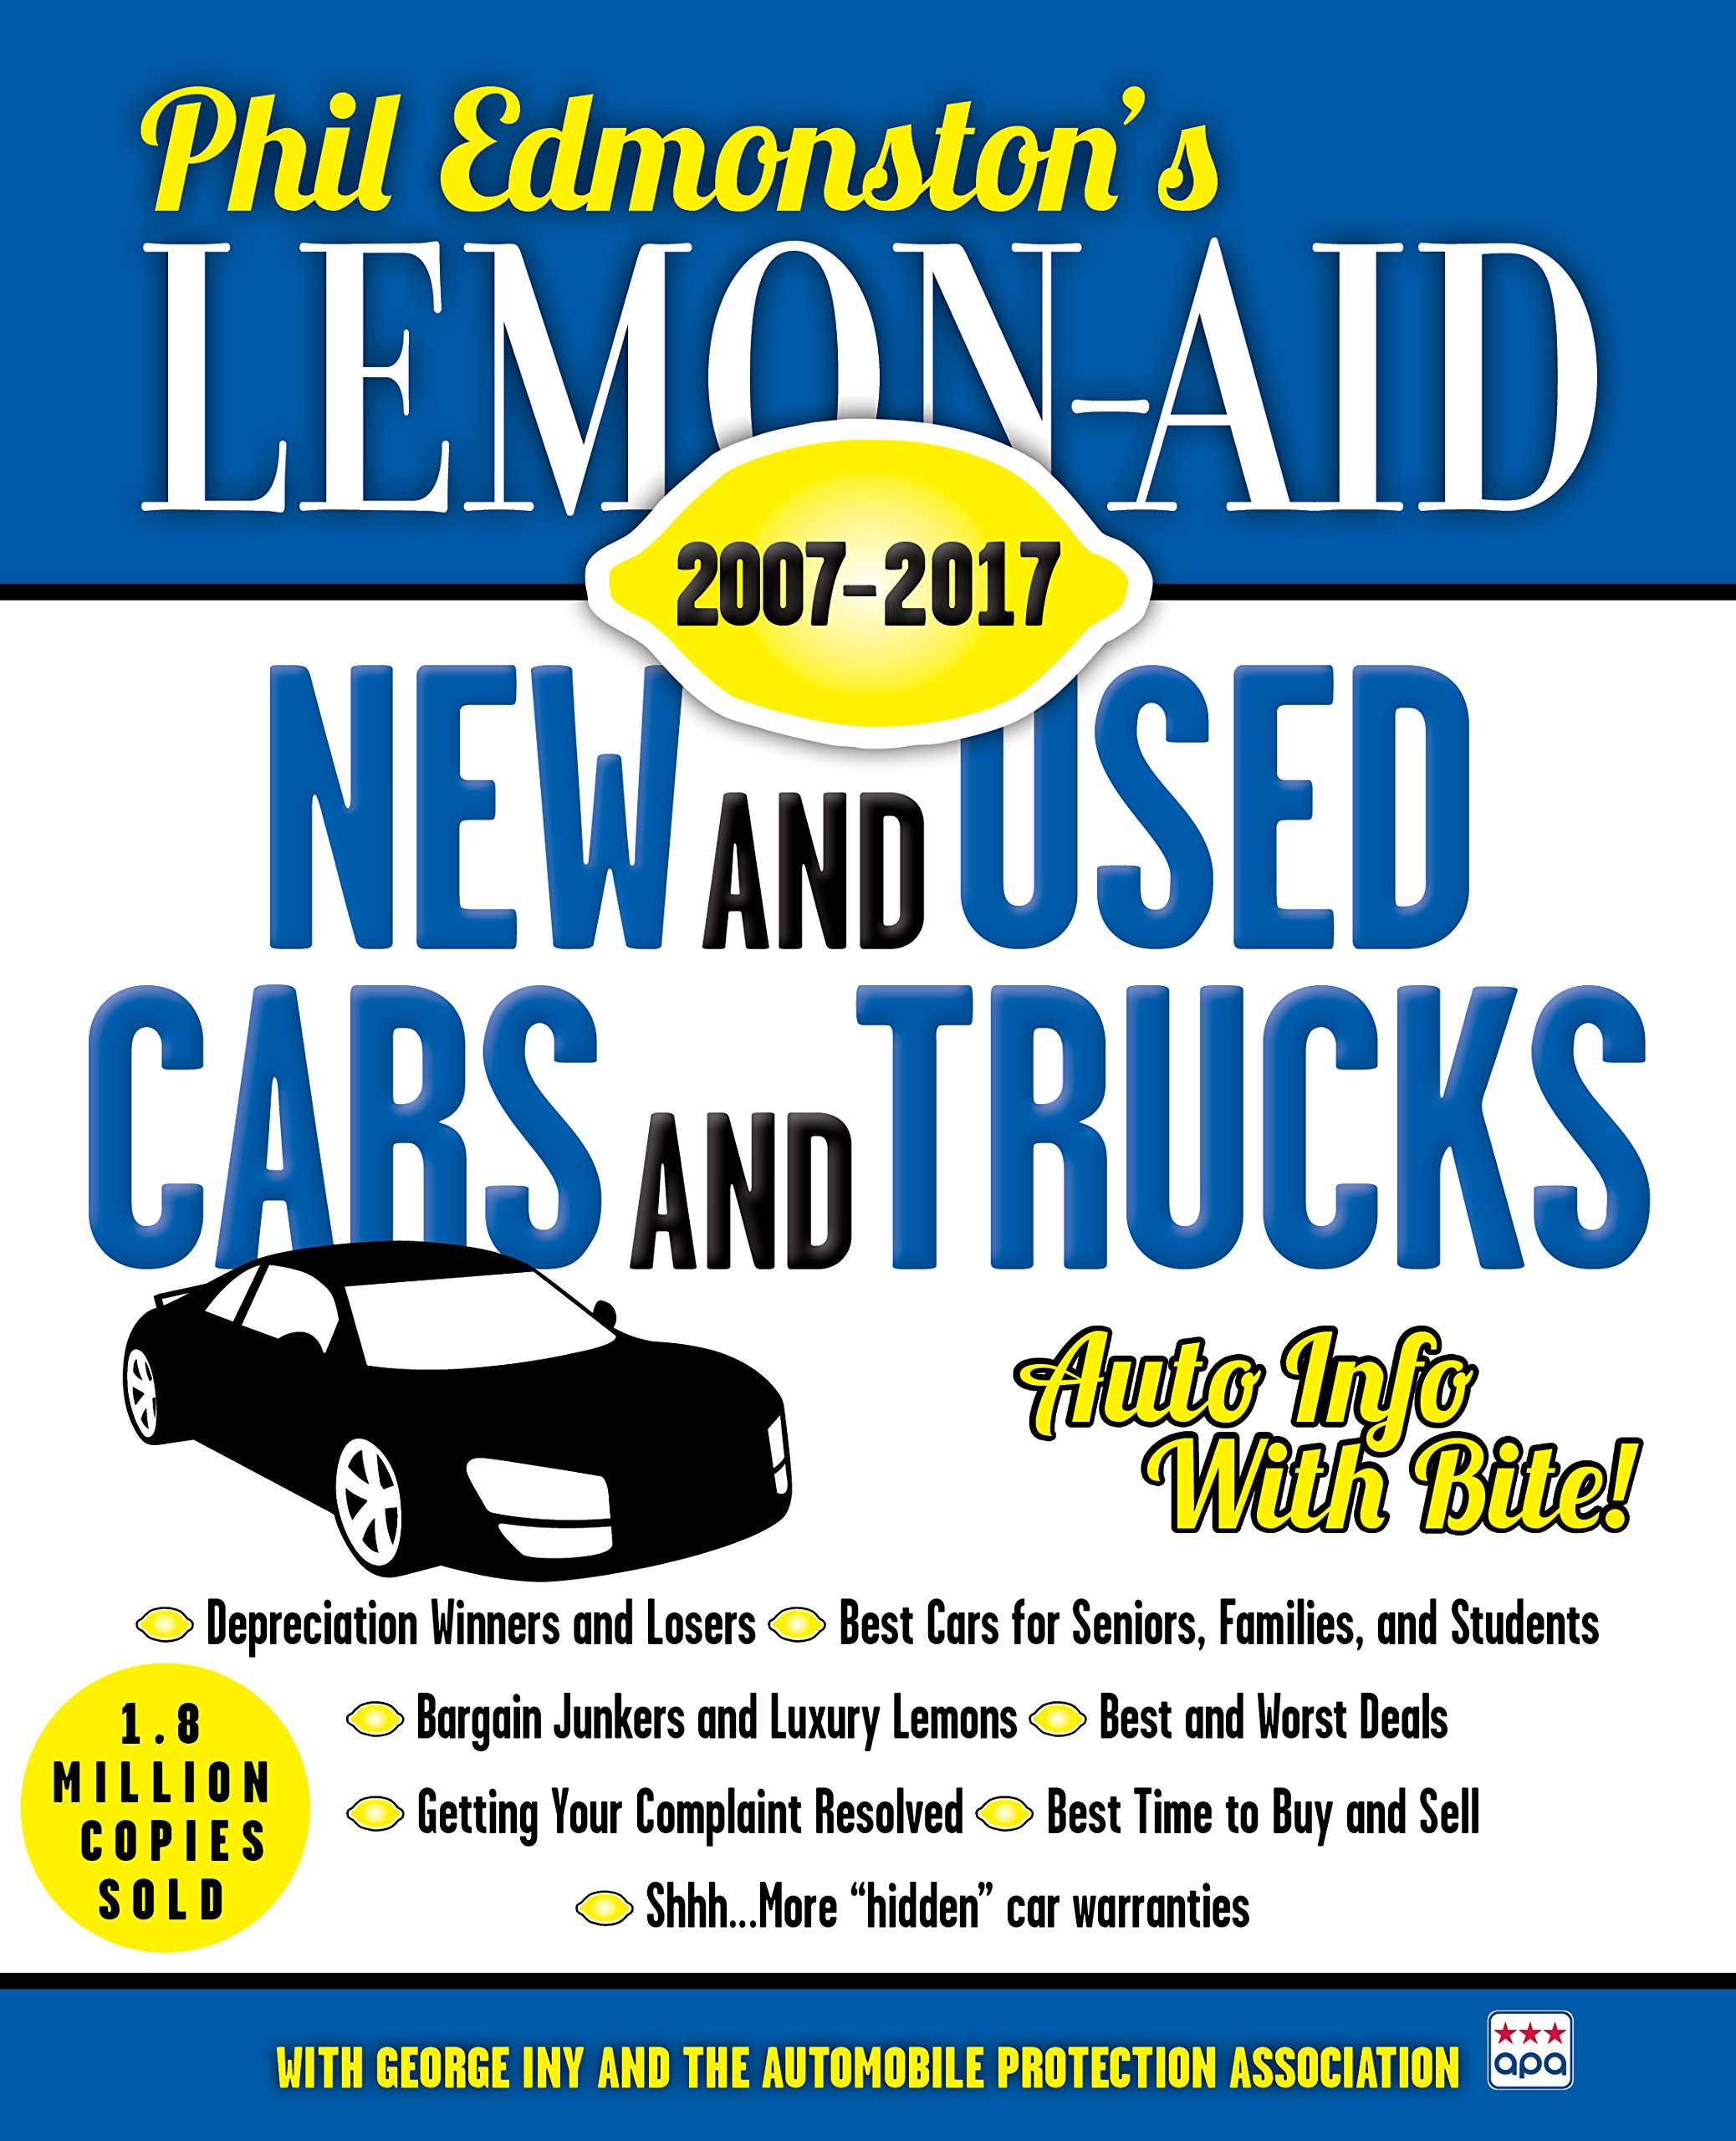 Lemon-Aid New and Used Cars and Trucks 2007-2017: Phil Edmonston ...